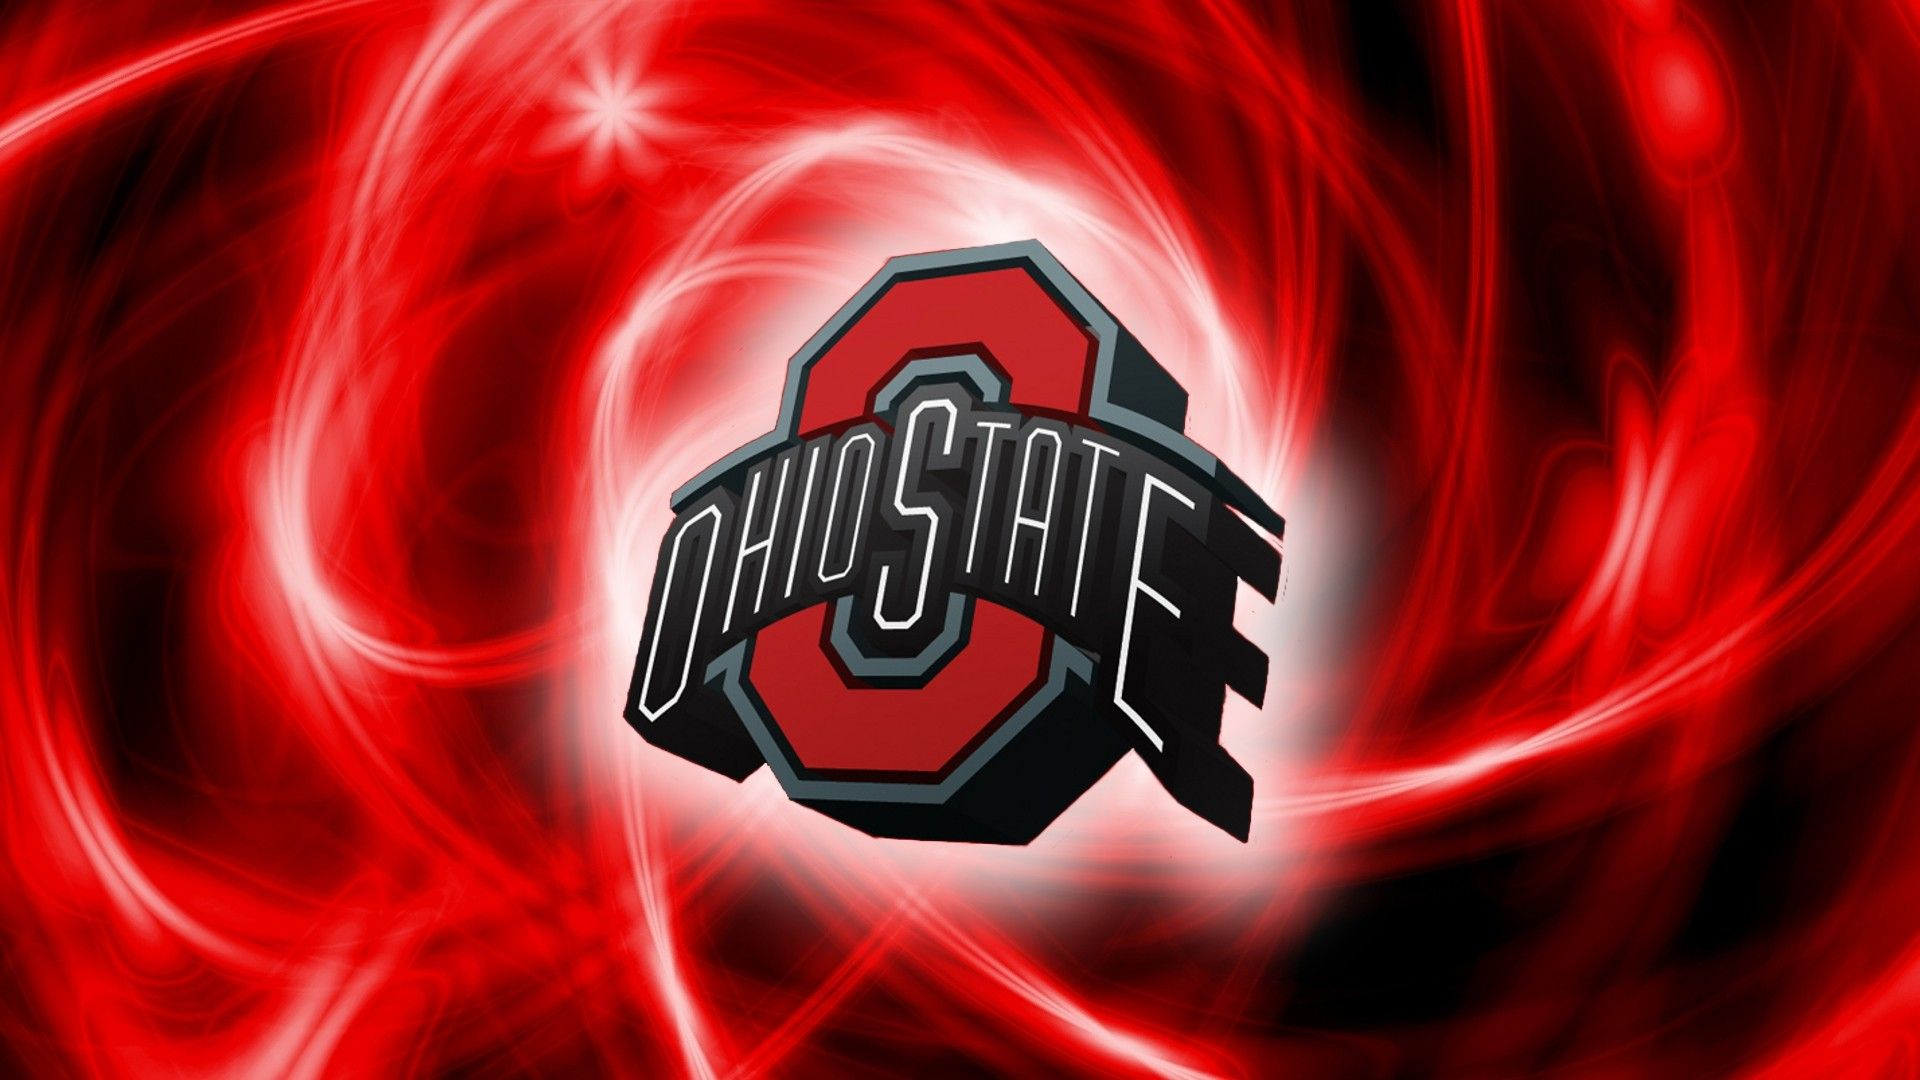 Ohio State Football Logo Wallpaper In Sports Picspaper Sports